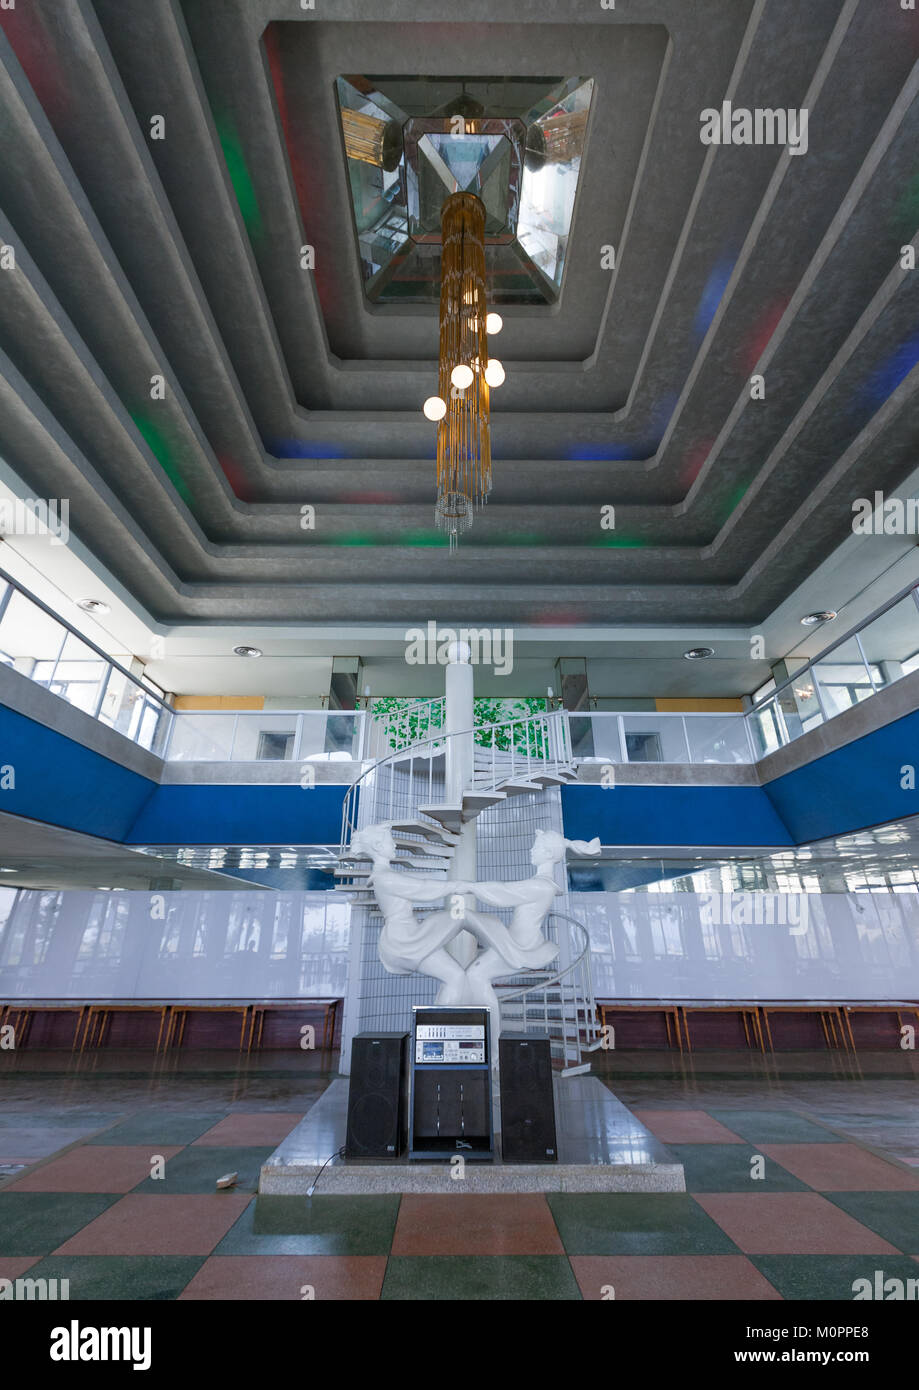 Grand hallway with staircase in Songdowon international children's camp, Kangwon Province, Wonsan, North Korea - Stock Image